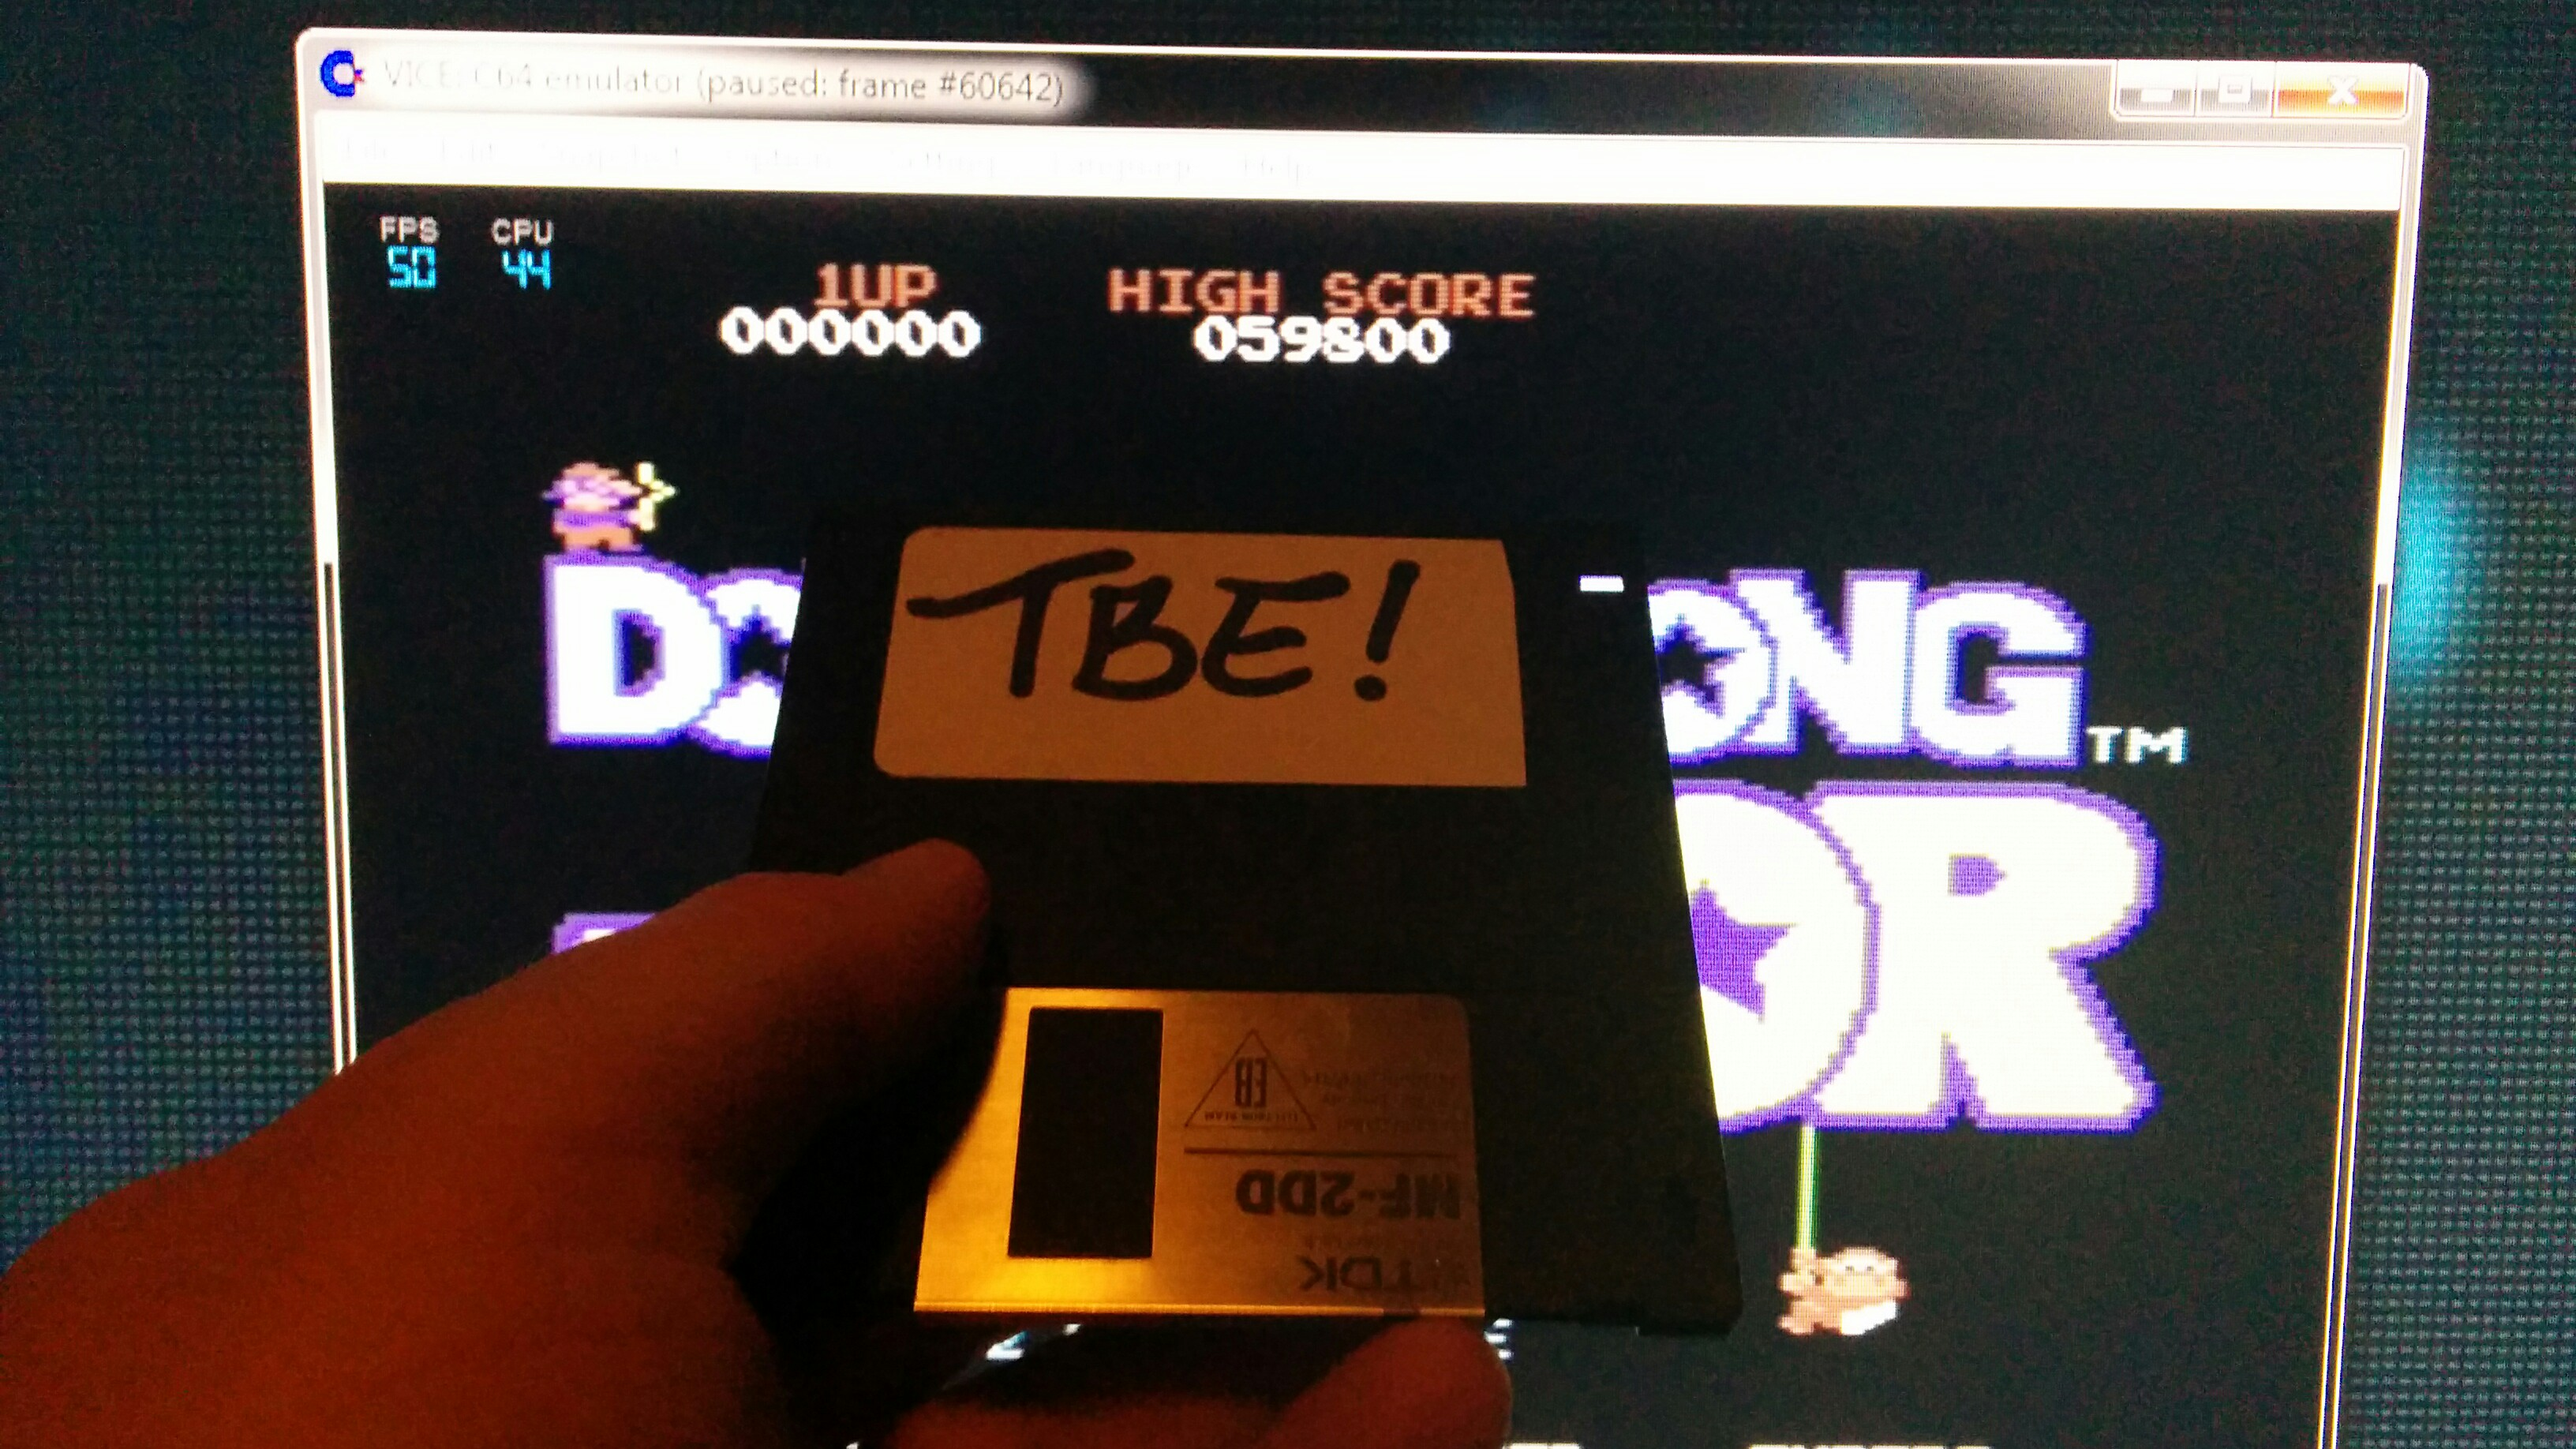 Sixx: Donkey Kong Junior: Standard (Commodore 64 Emulated) 59,800 points on 2014-11-09 17:14:14